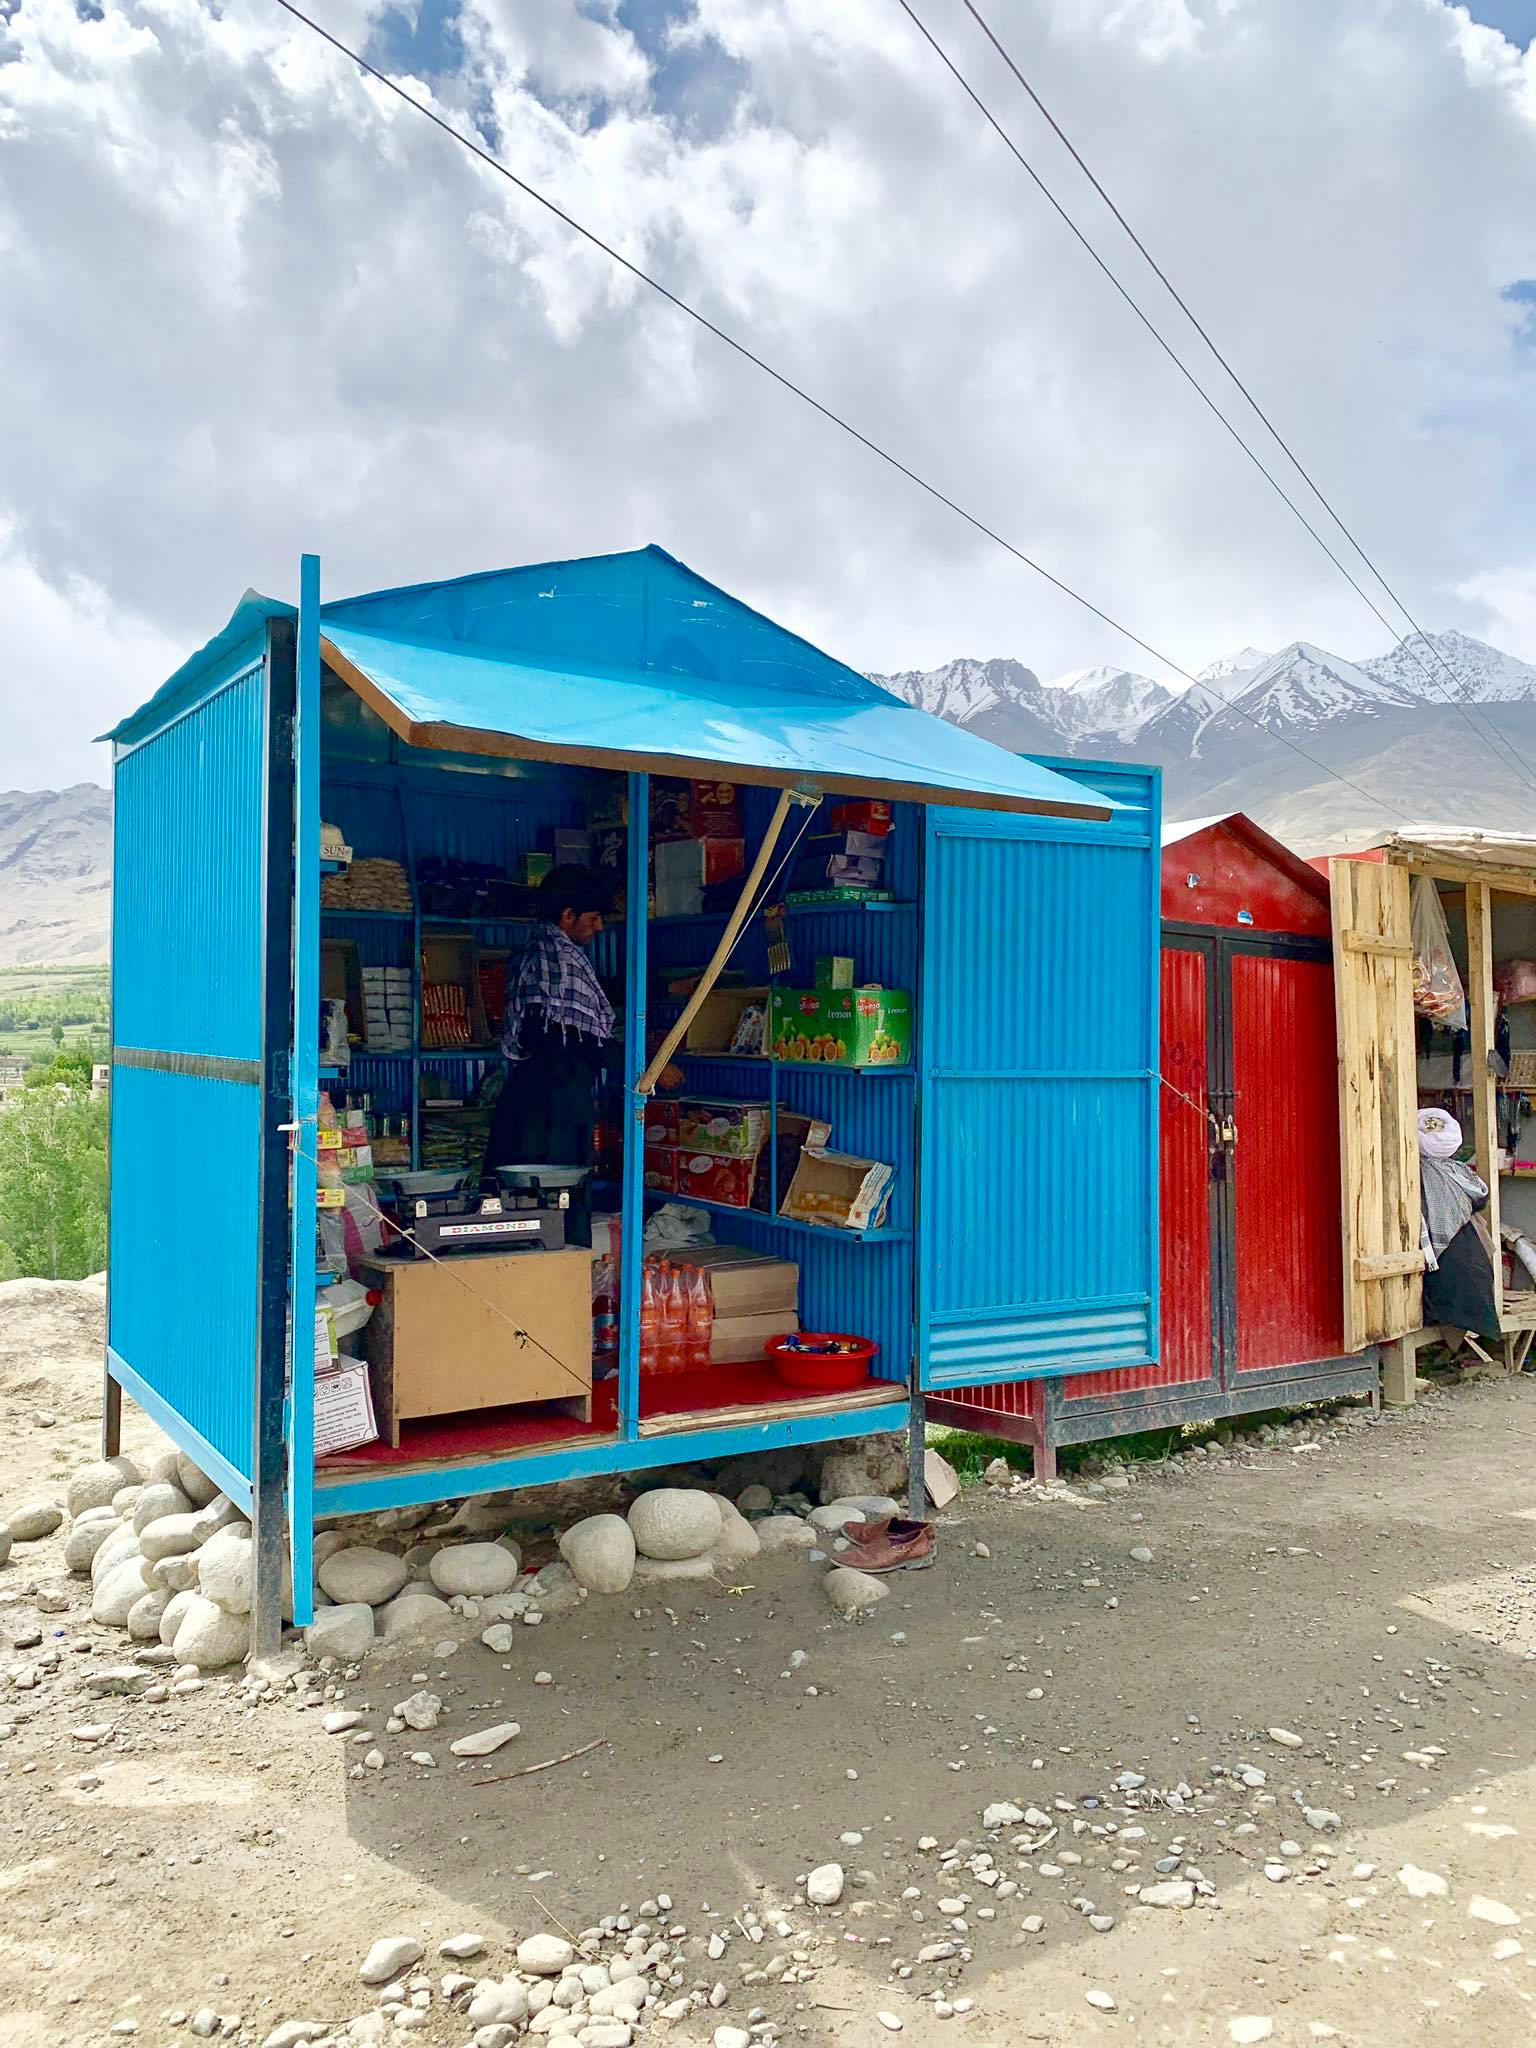 Kach Solo Travels in 2019 AFGHANISTAN, my 127th country9.jpg